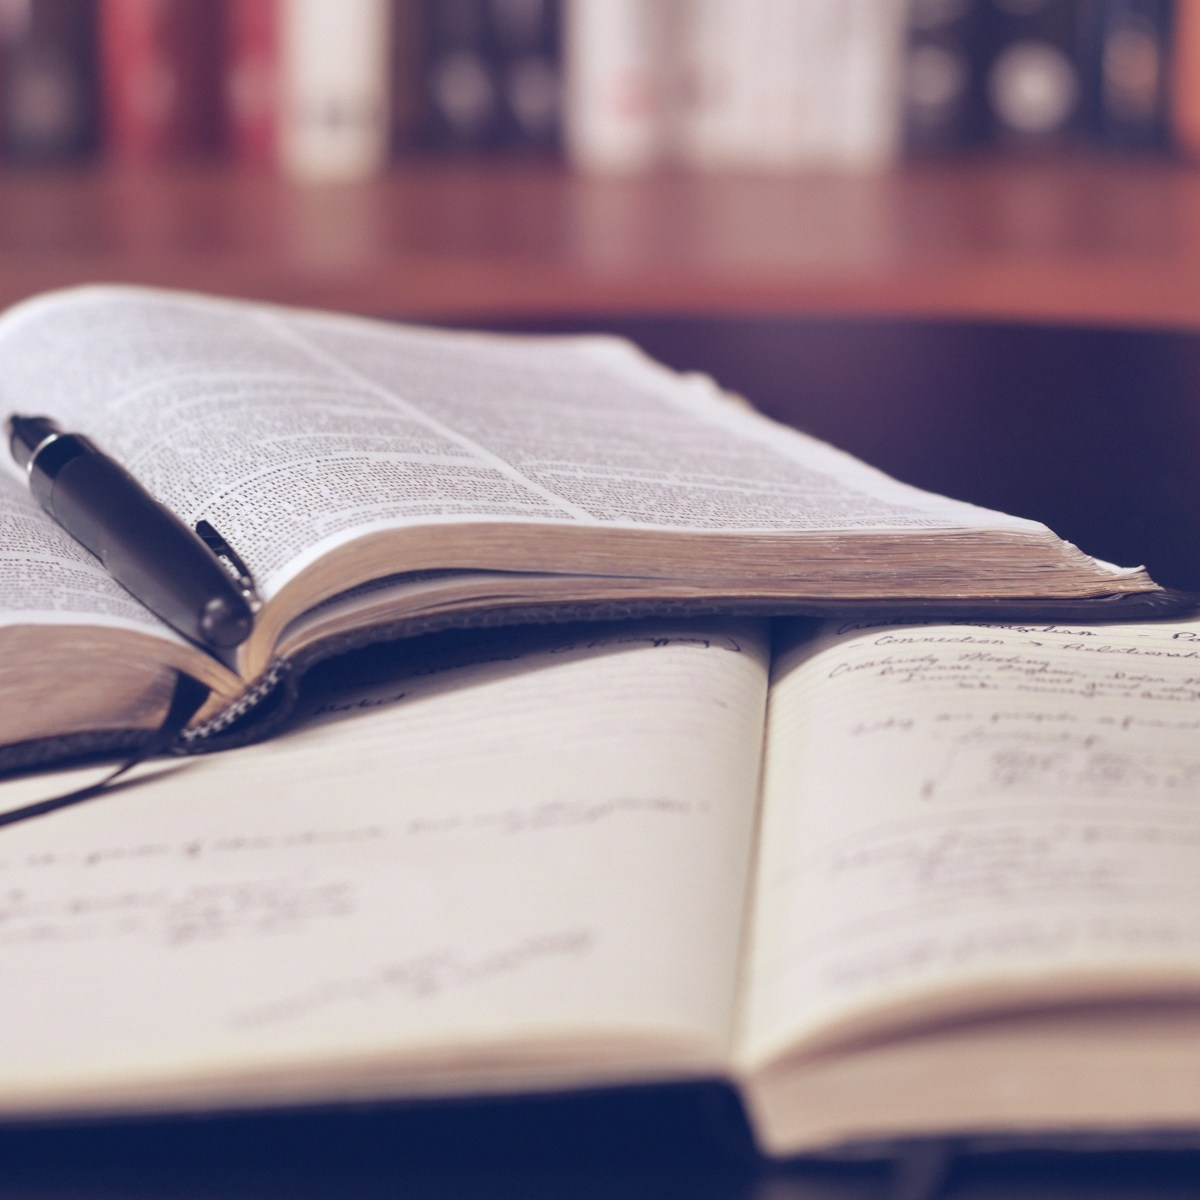 A close-up shot of an open reference book and a marked-up open notebook. A pen sits in the crease between the pages of the reference book.